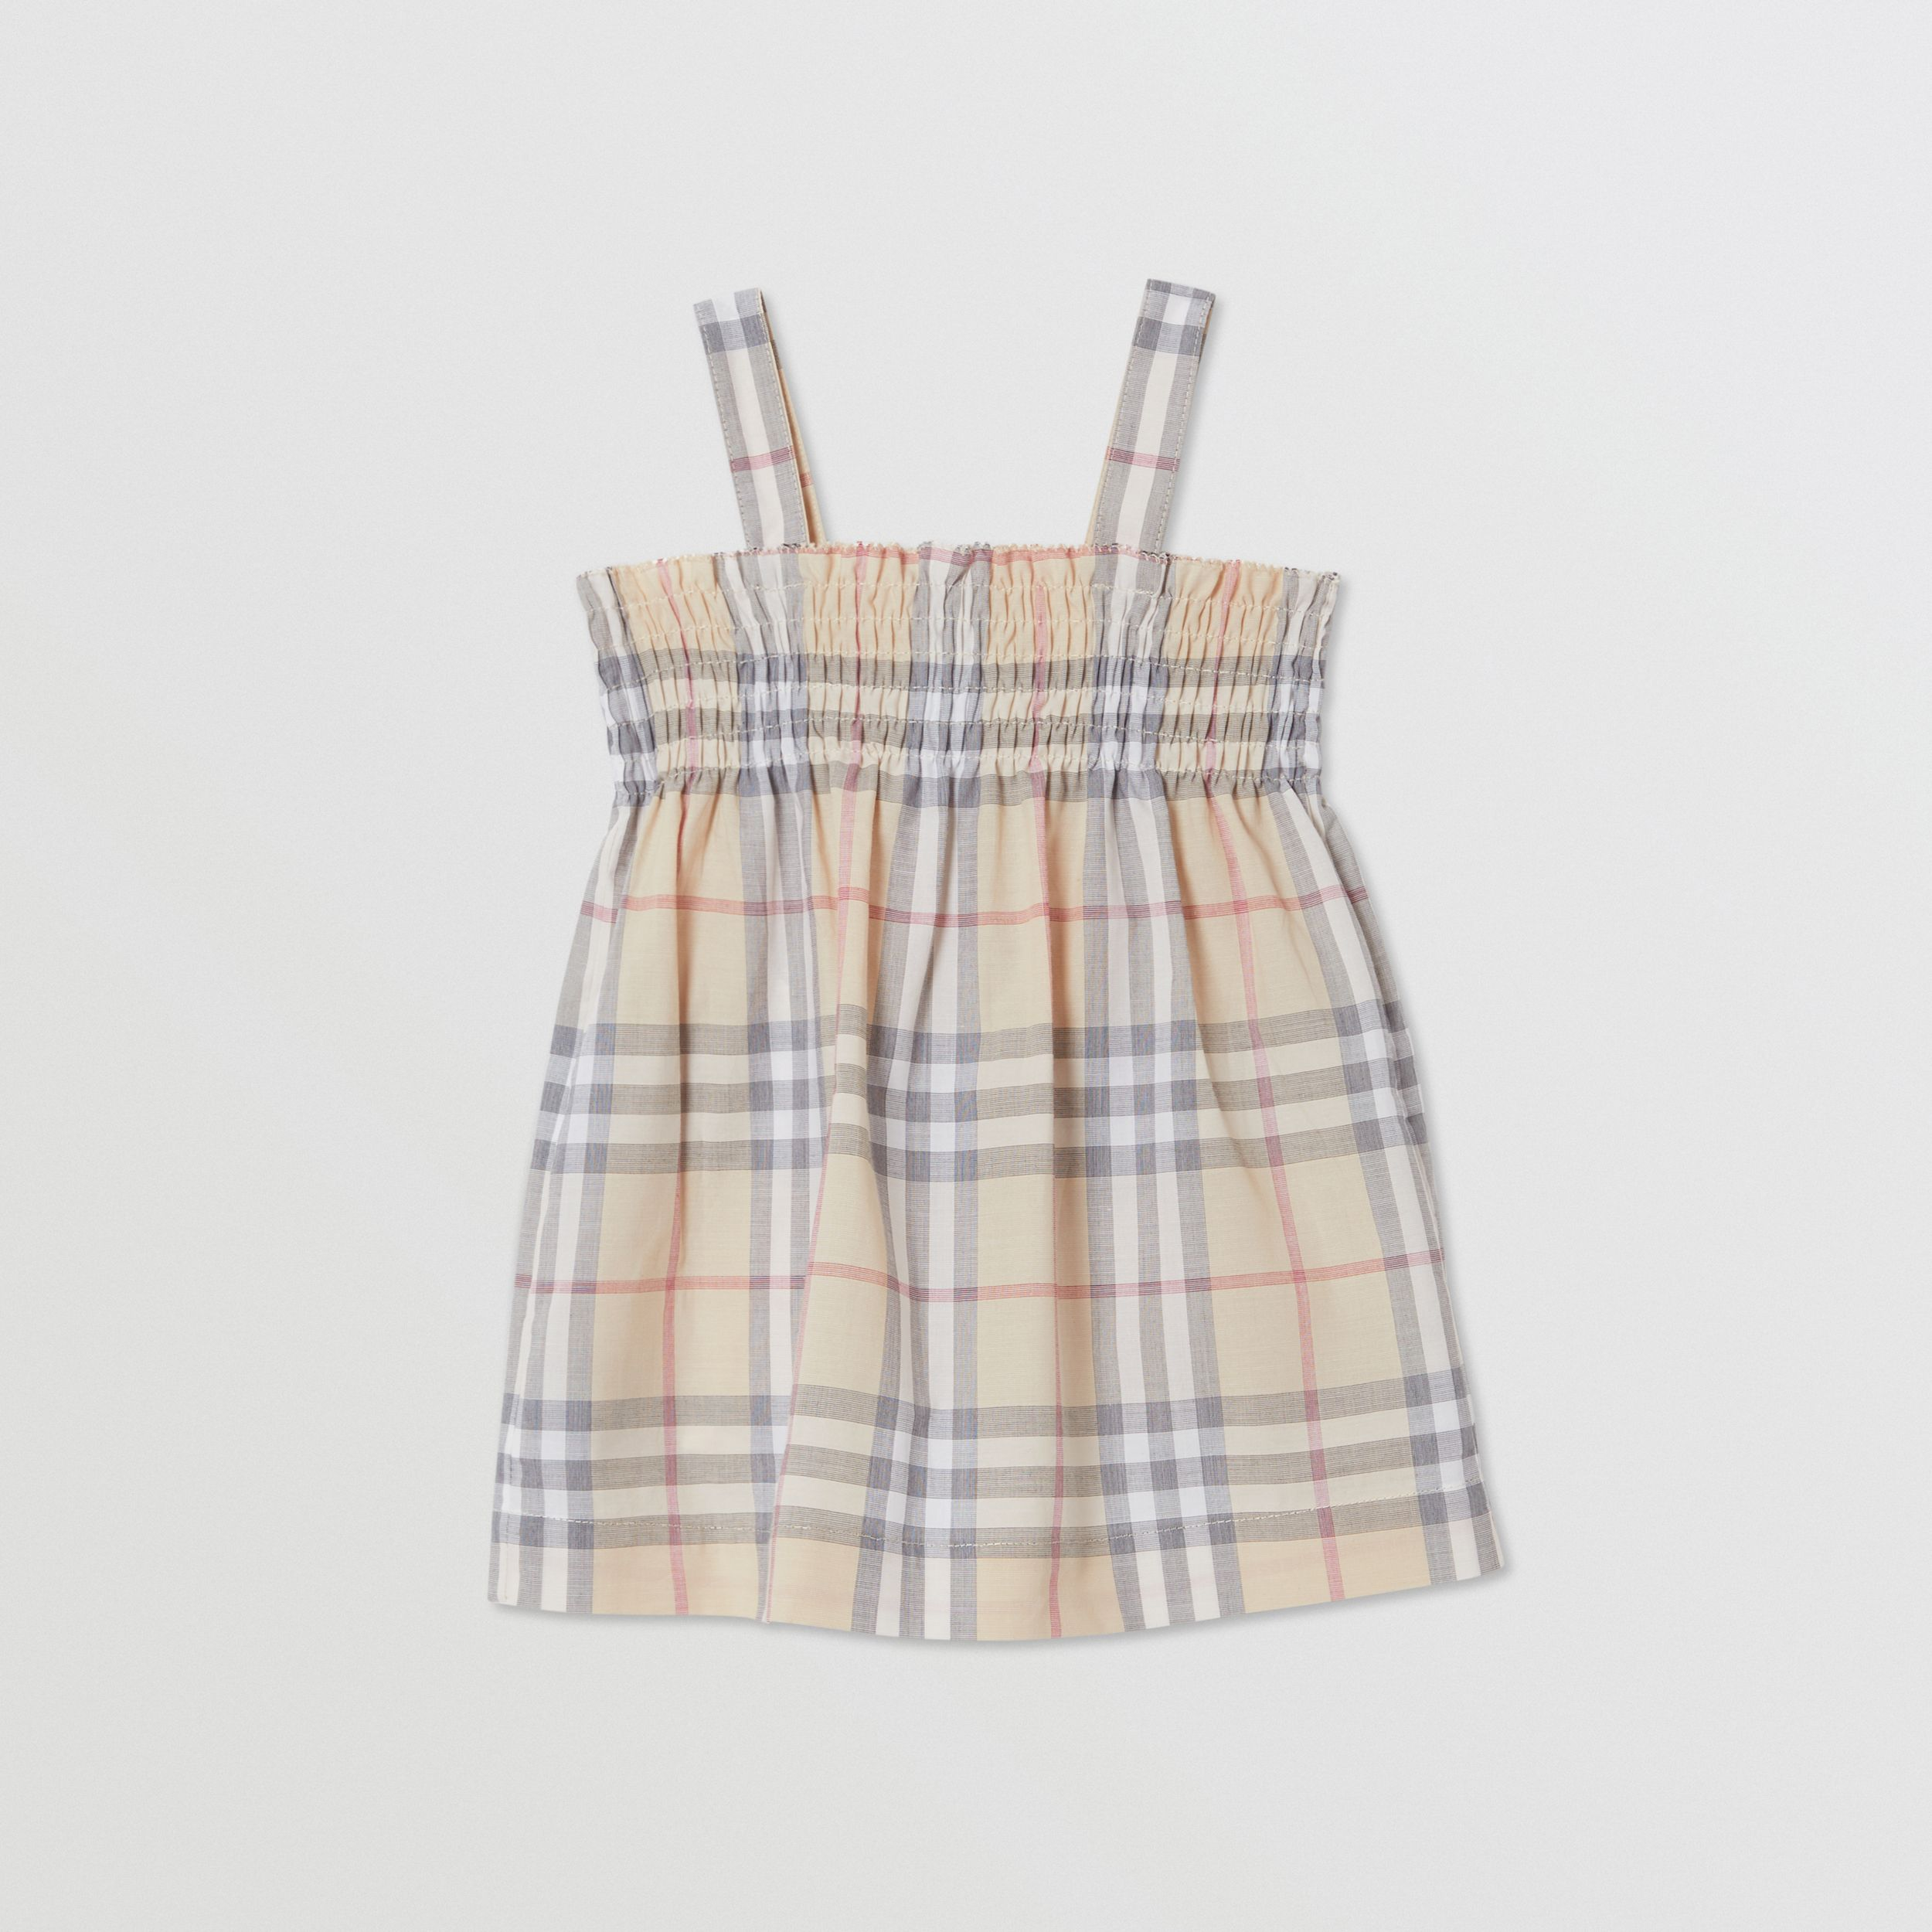 Smocked Check Cotton Dress with Bloomers in Pale Stone - Children | Burberry - 4